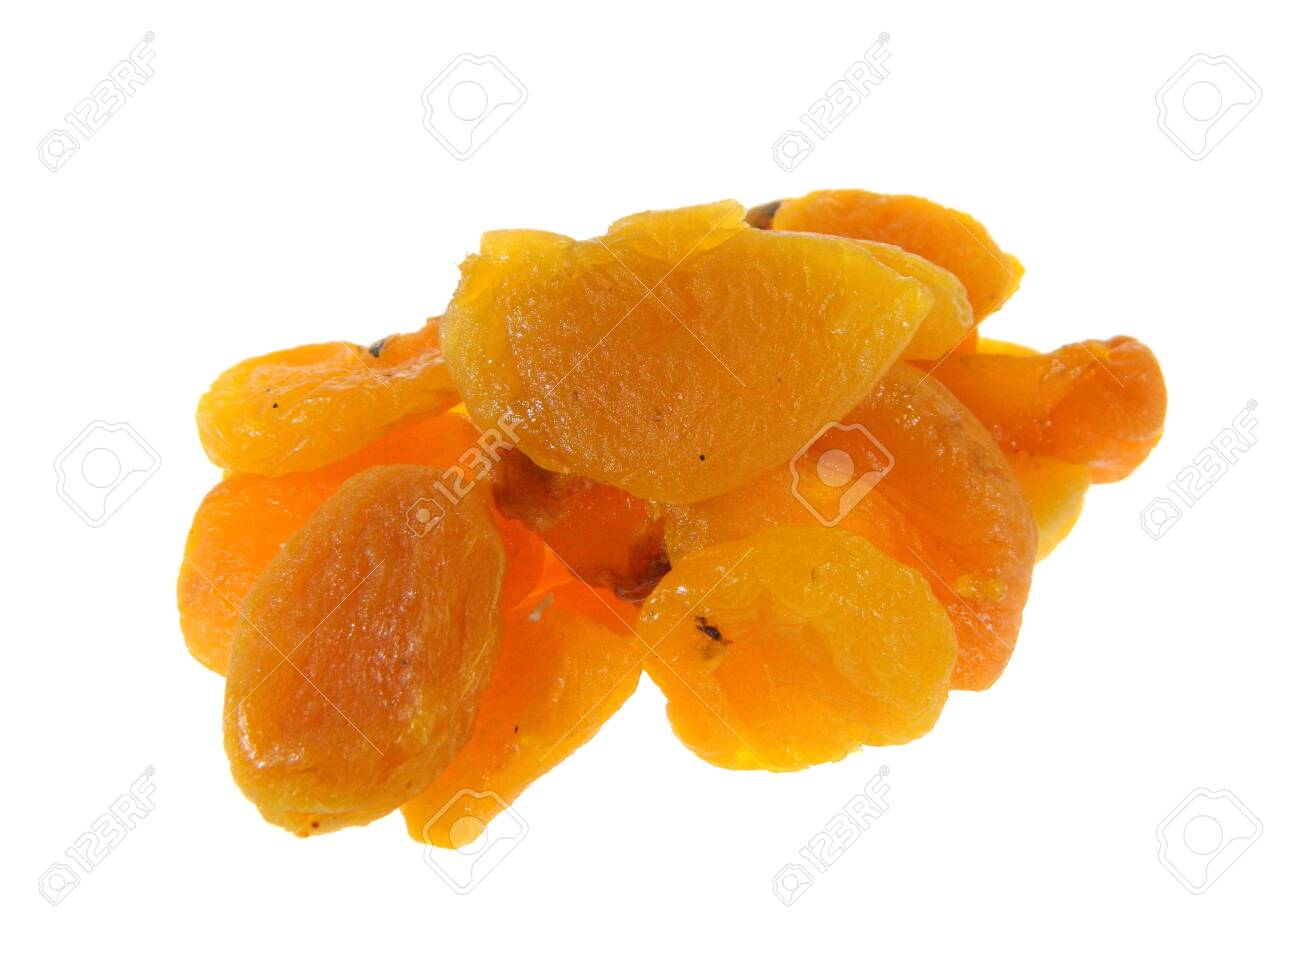 dried fruits isolated on white background - 137367356